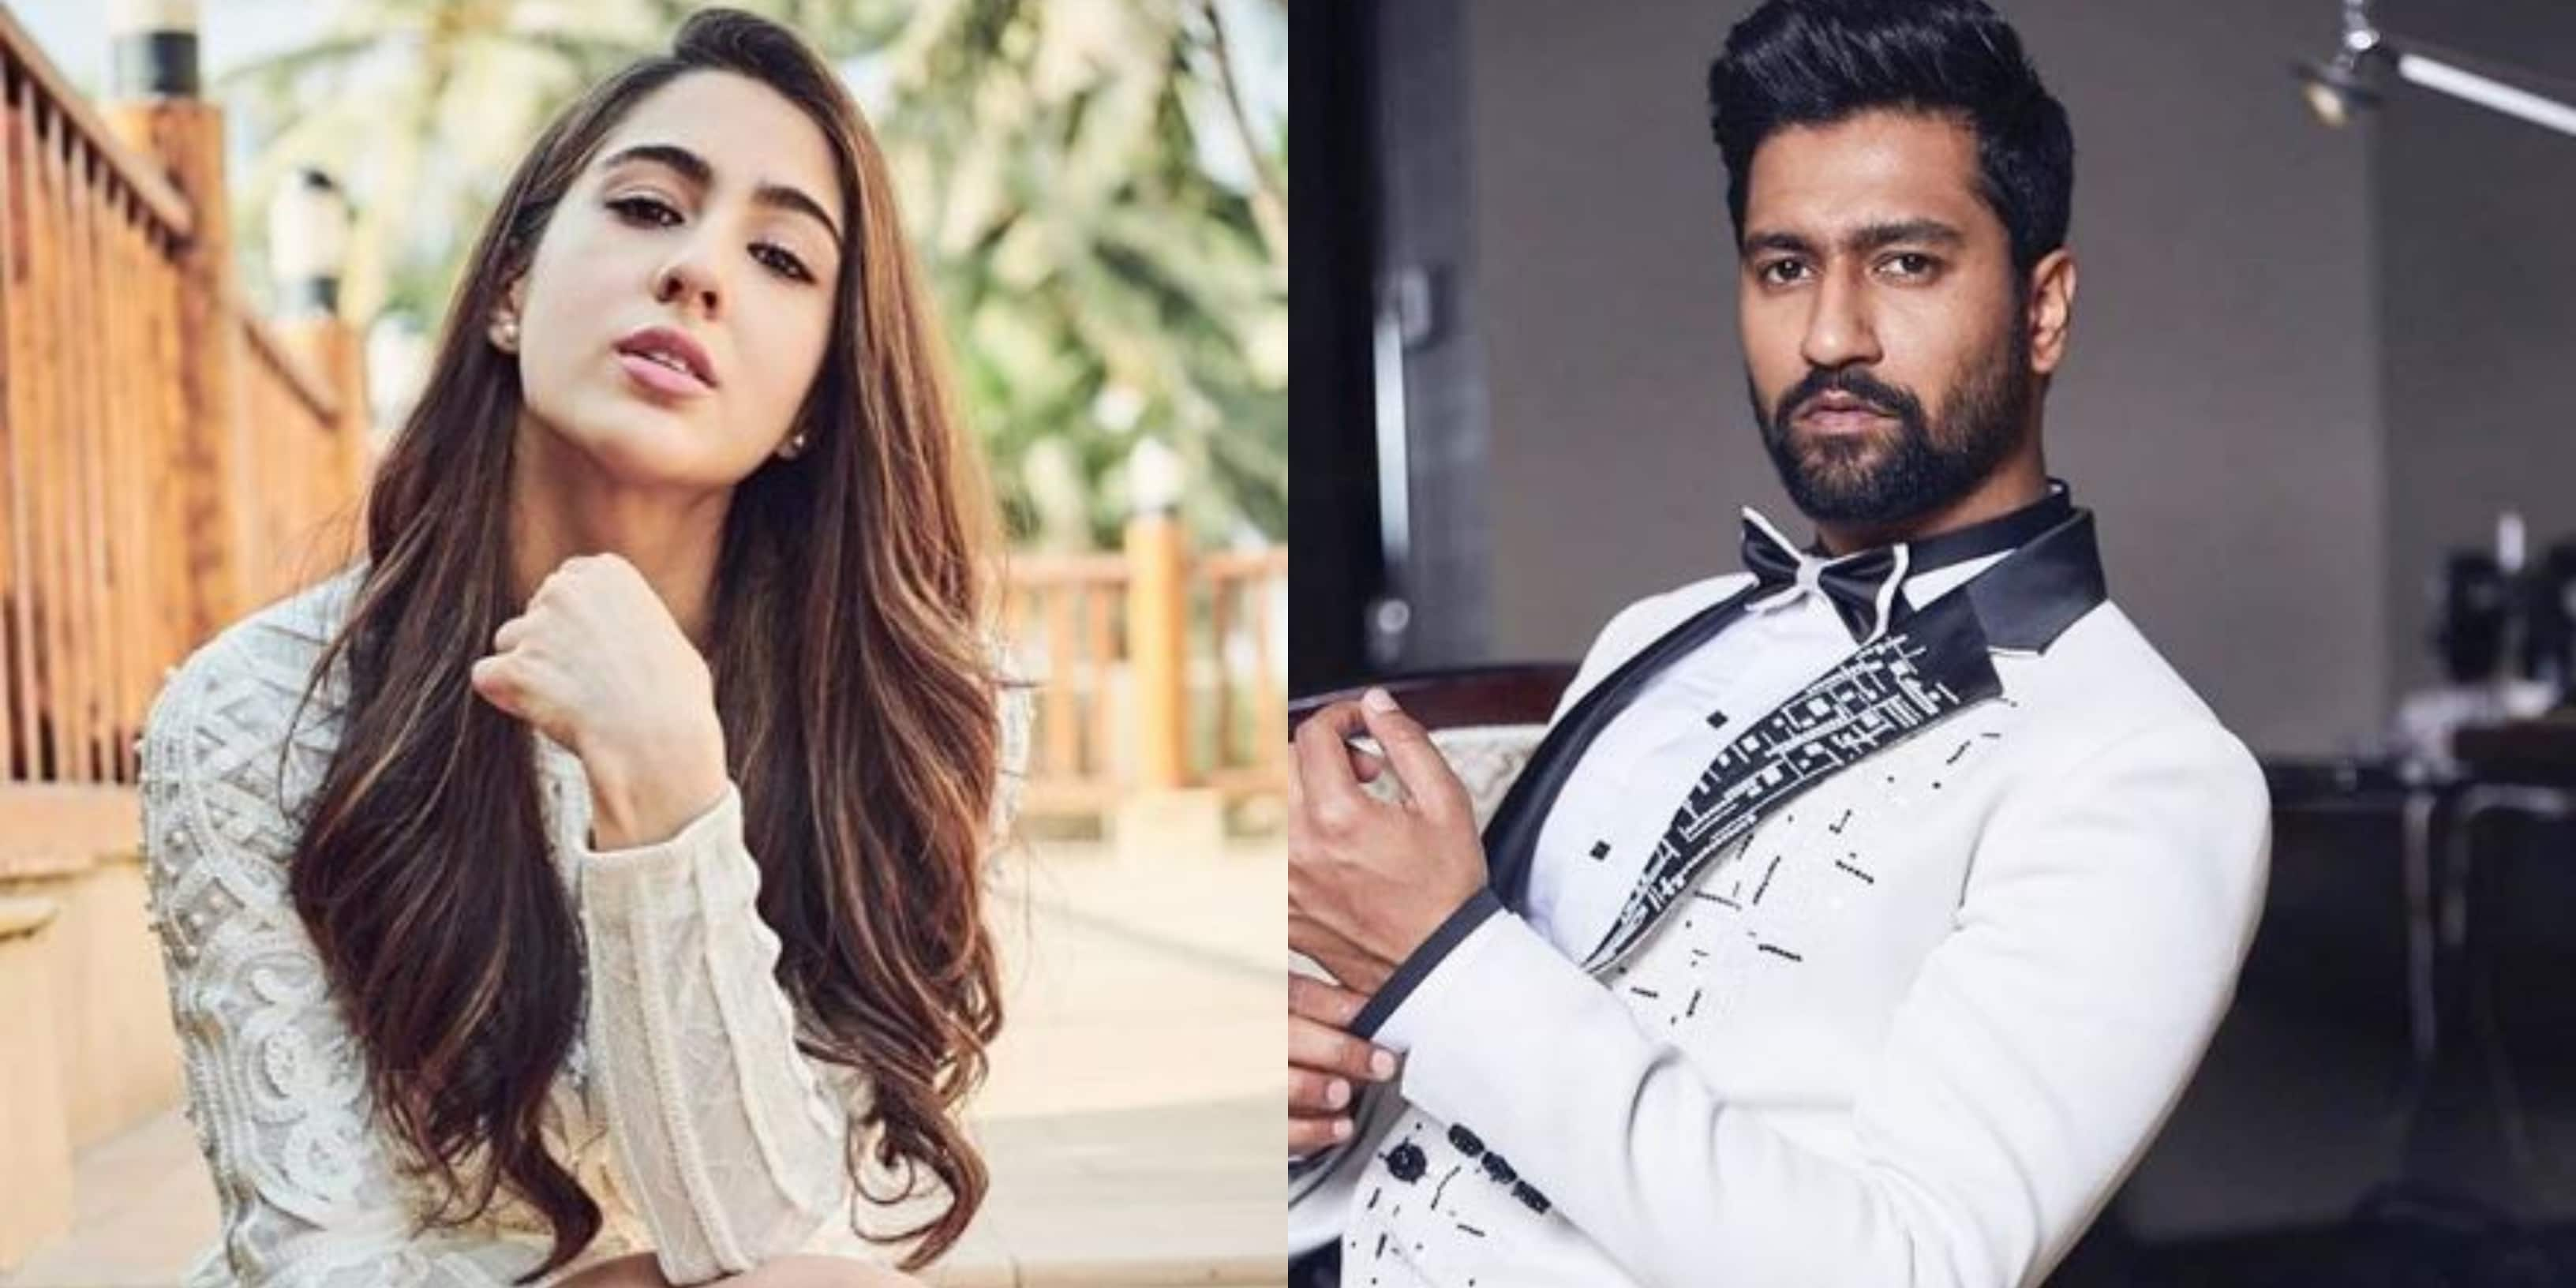 Vicky Kaushal And Sara Ali Khan To Woo Each Other In Anees Bazmee's Next